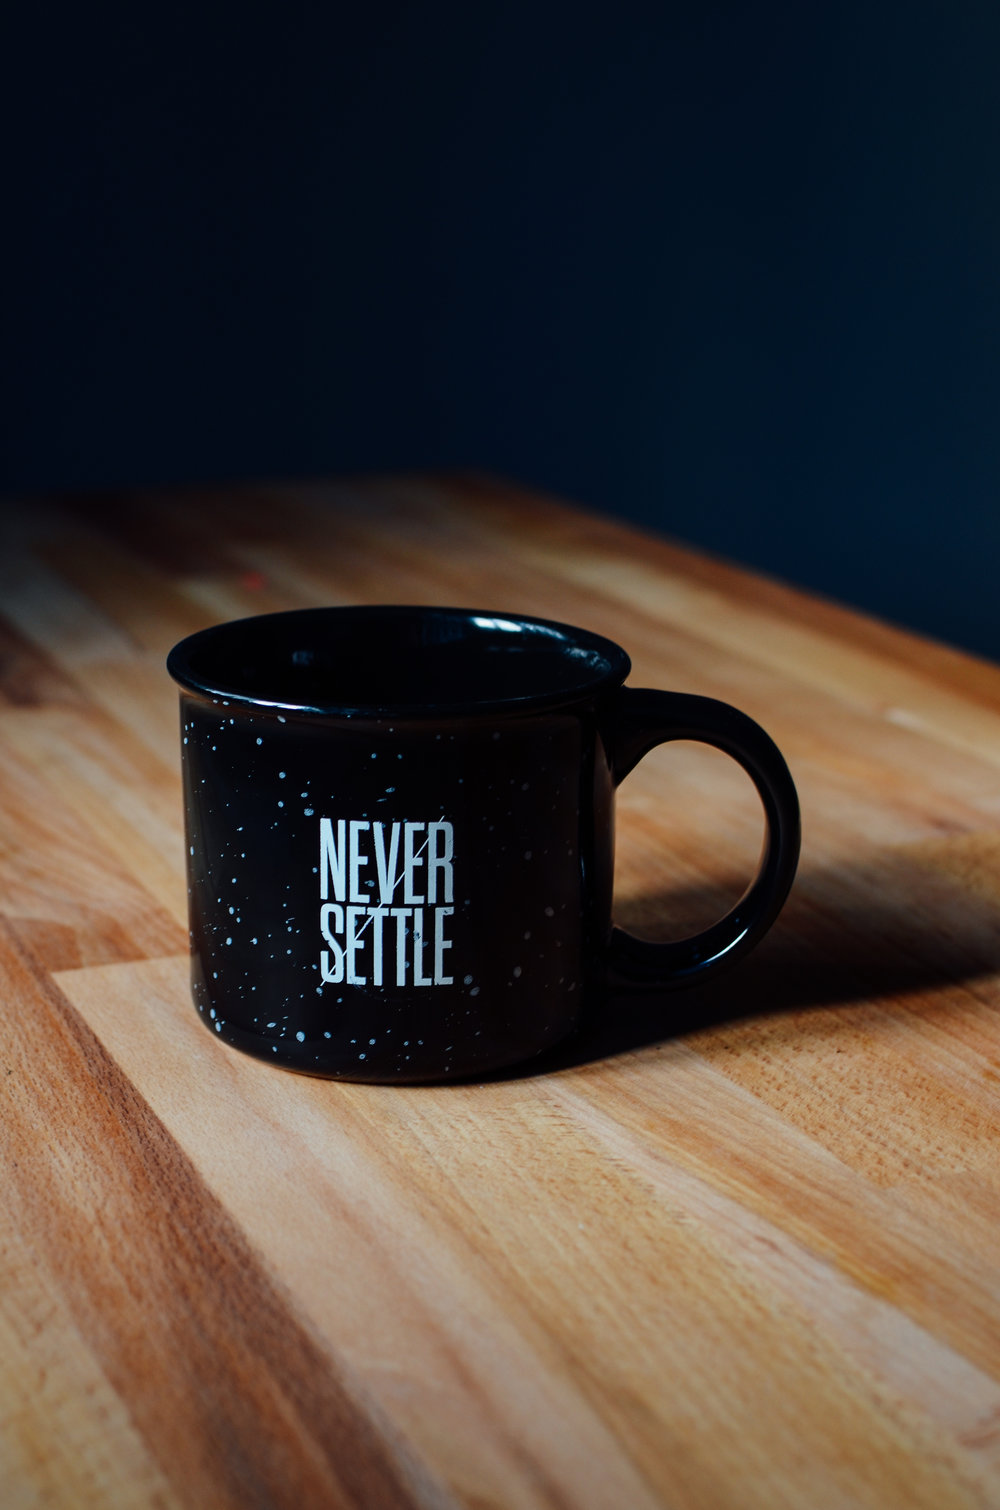 Canva - Coffee Cup with Motivational Quote on Wooden Table.jpg